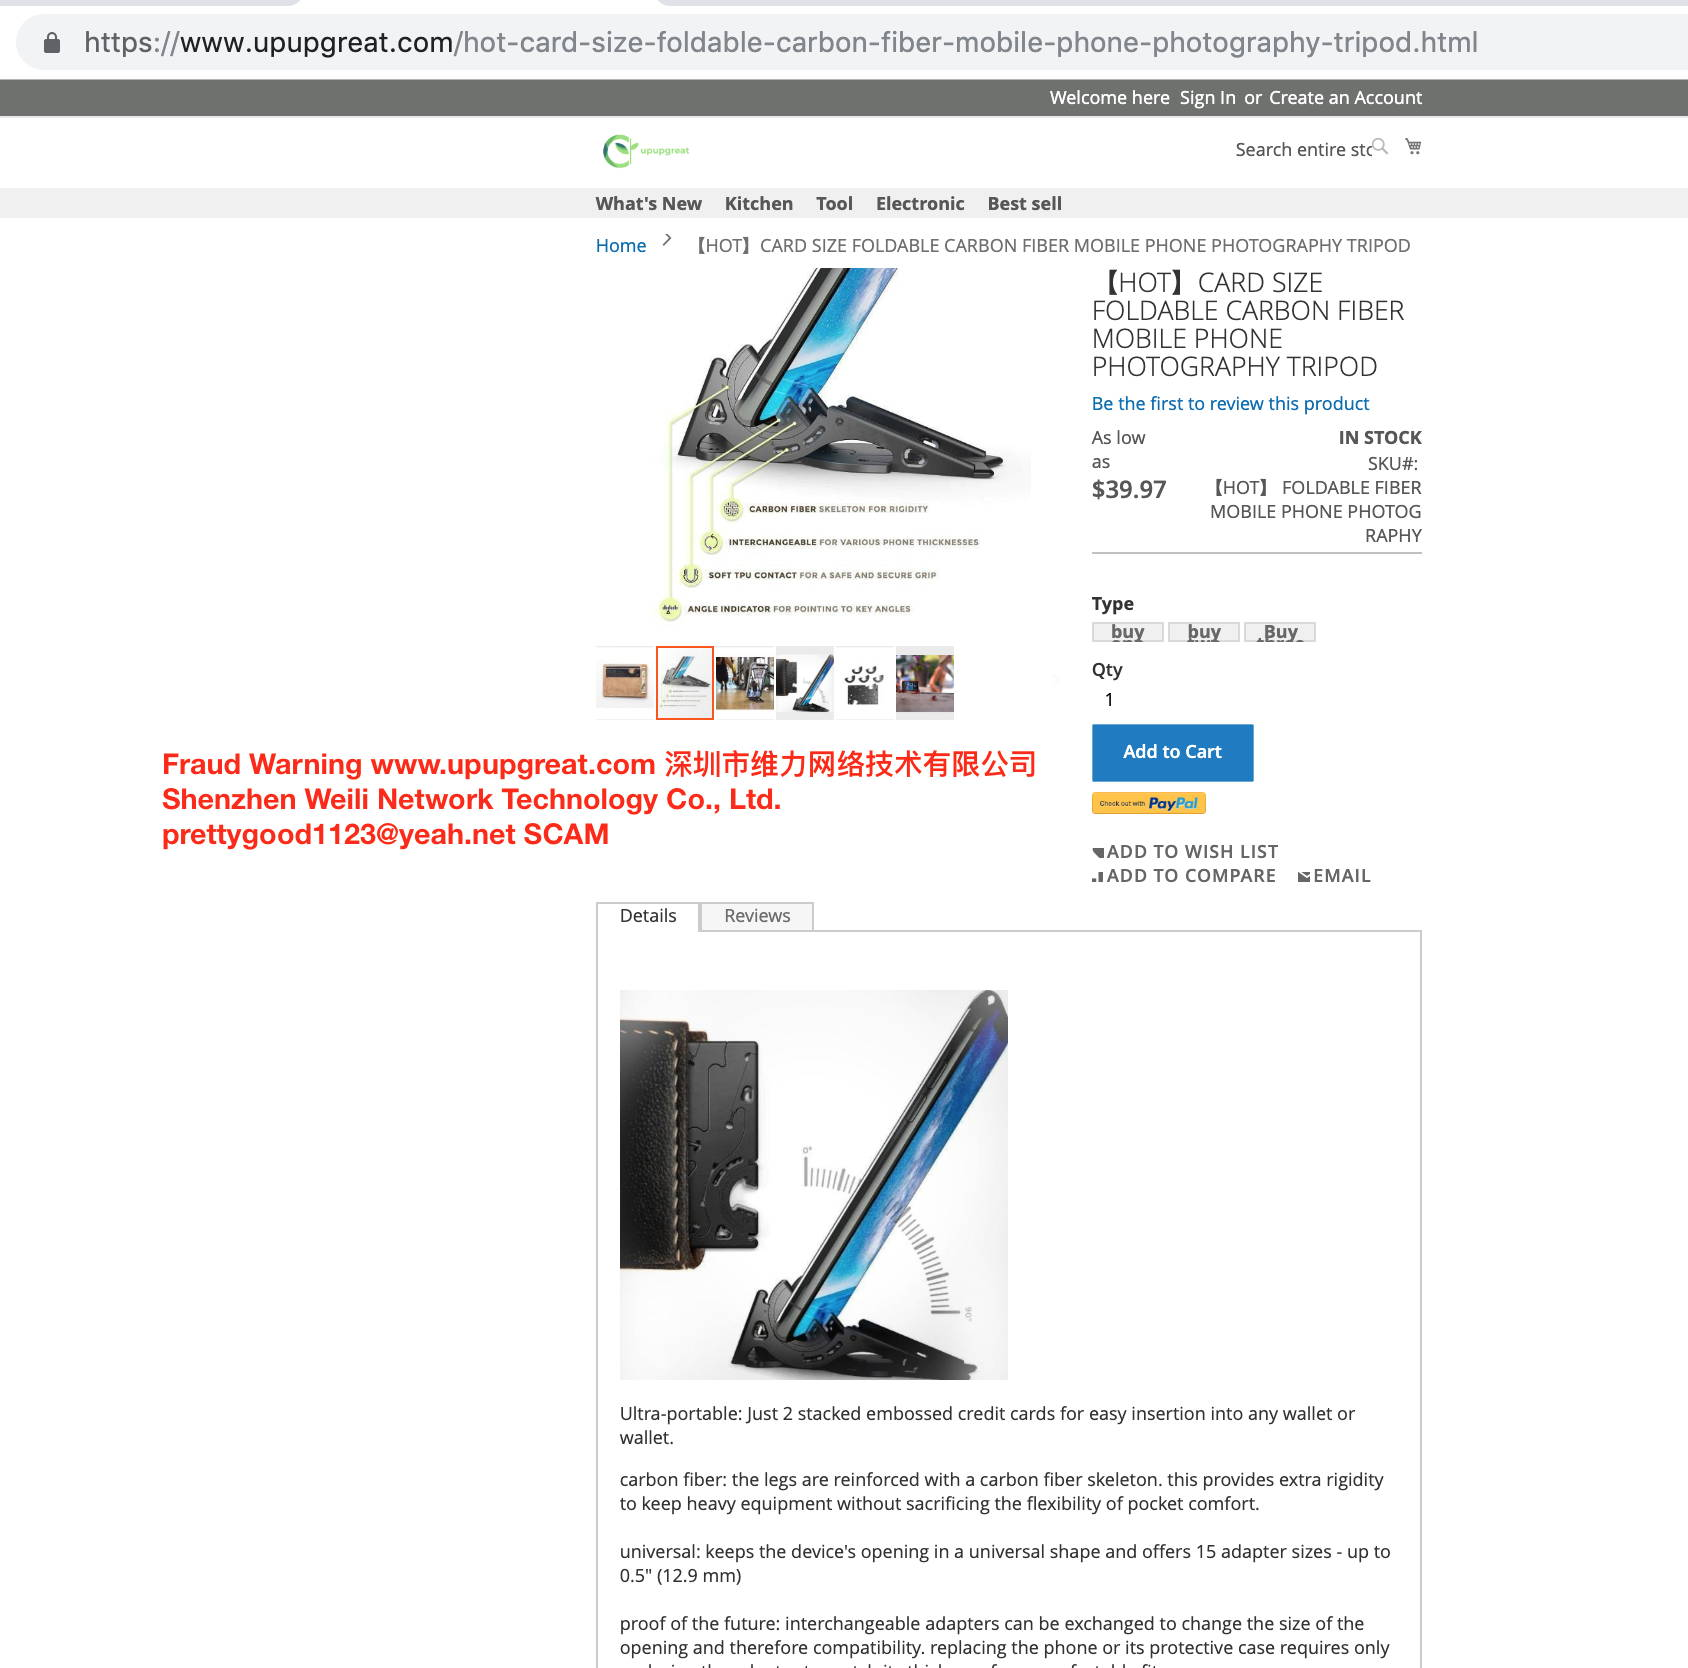 Fraud Warning www.upupgreat.com 深圳市维力网络技术有限公司 Shenzhen Weili Network Technology Co., Ltd. prettygood1123@yeah.net SCAM